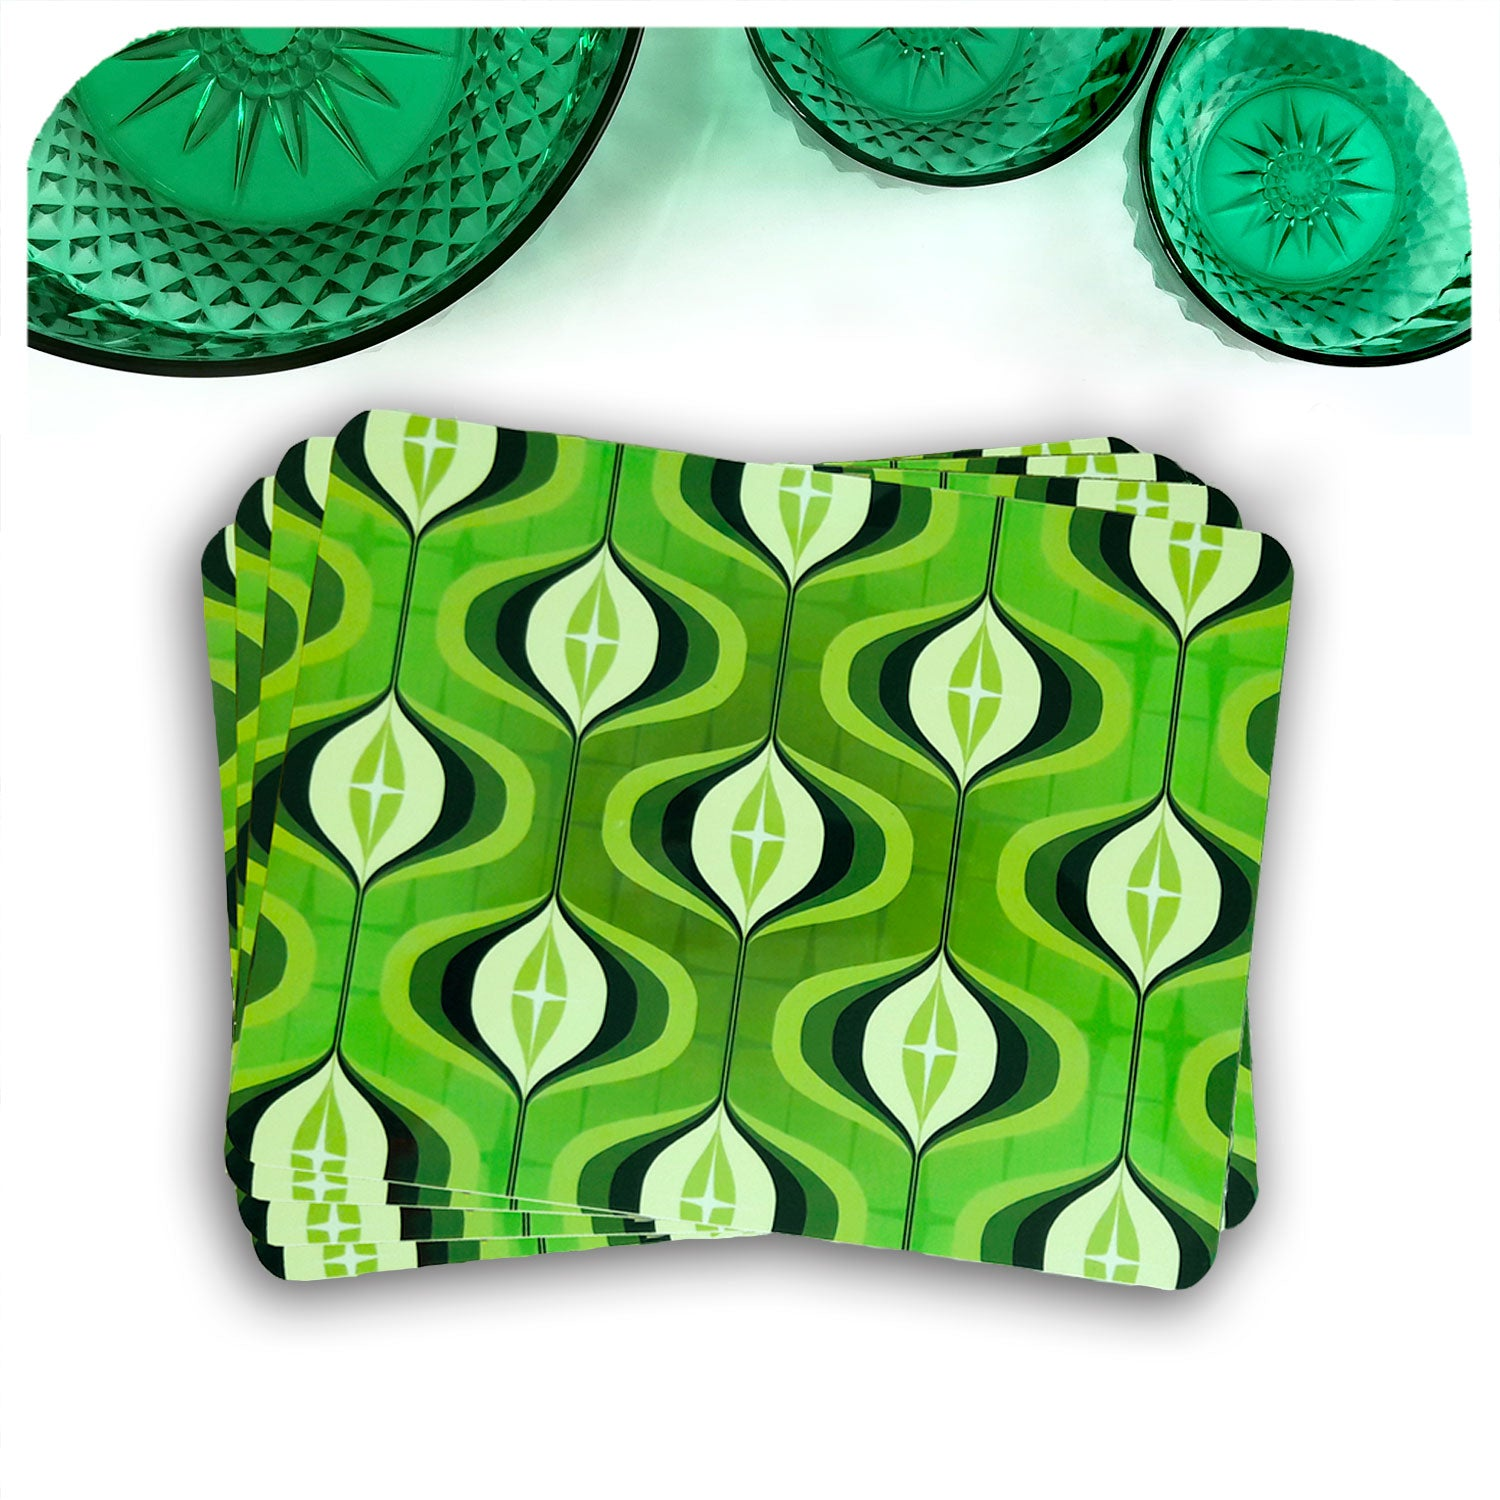 1970s Green Op Art Placemats, set of 4 in a fan | The Inkabilly Emporium